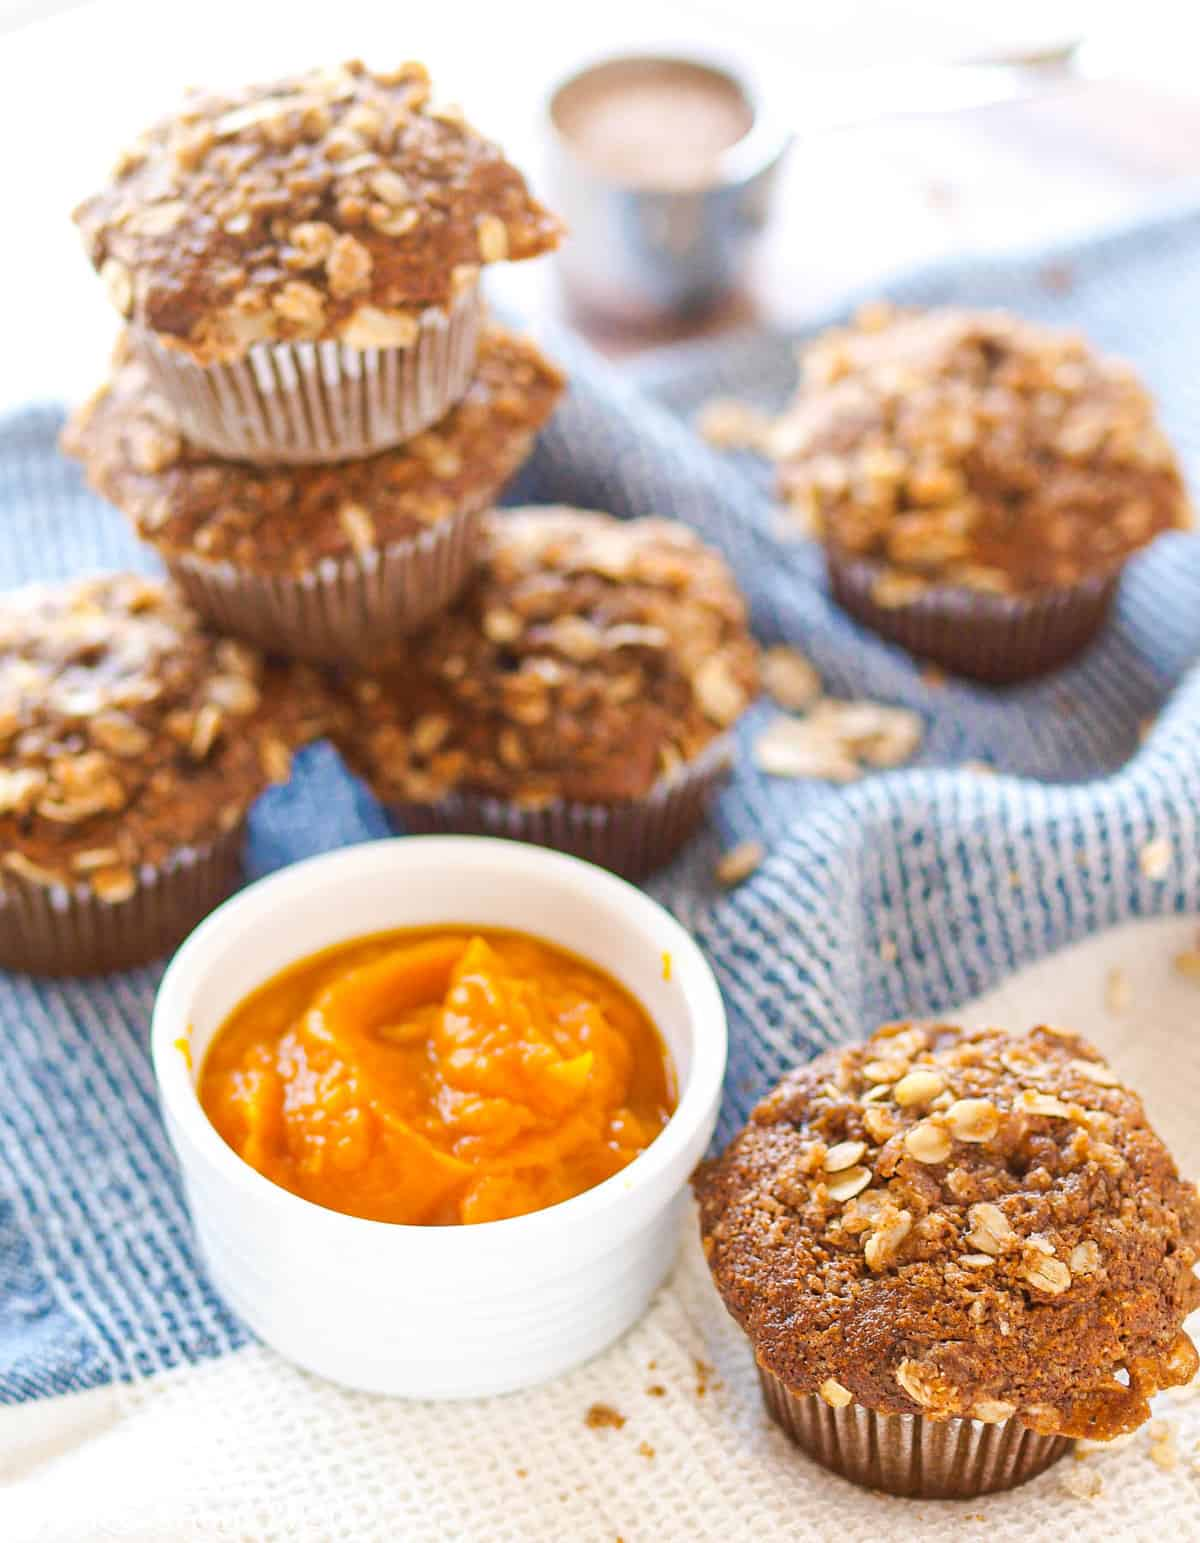 A stack of gluten-free pumpkin muffins with a muffin and dish of pumpkin in front